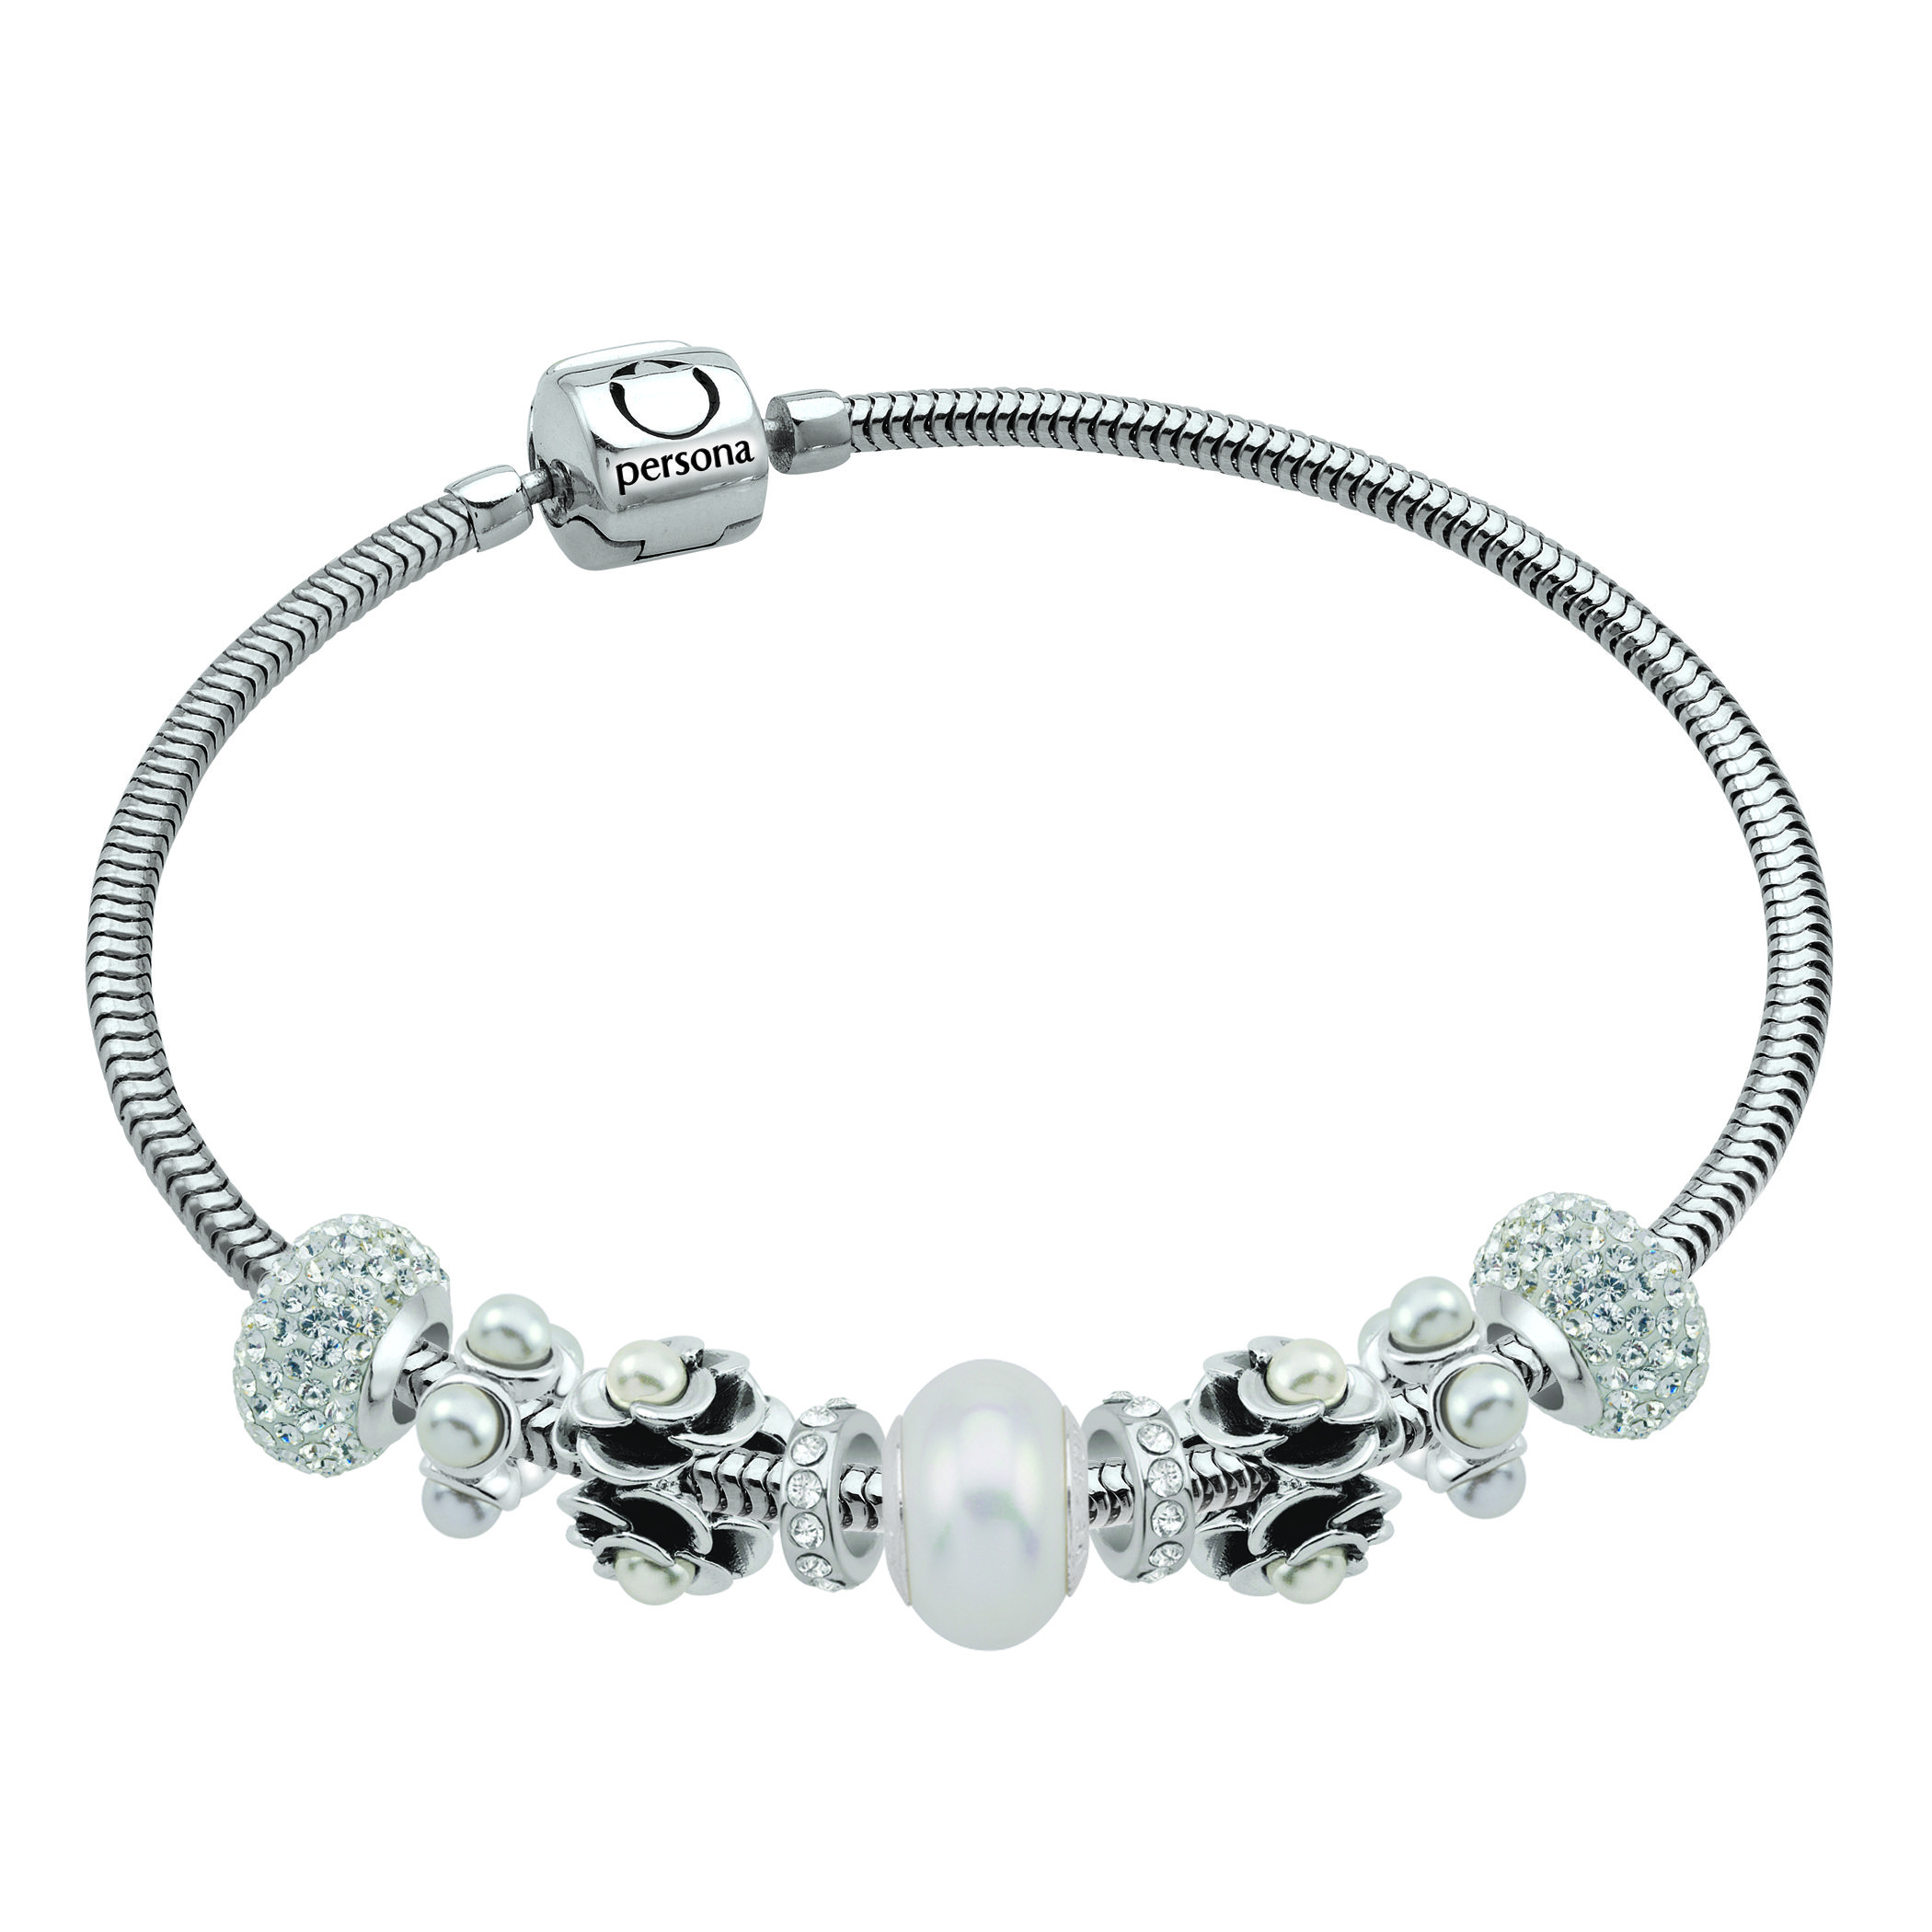 A Silver And Pearl Themed Persona Bracelet